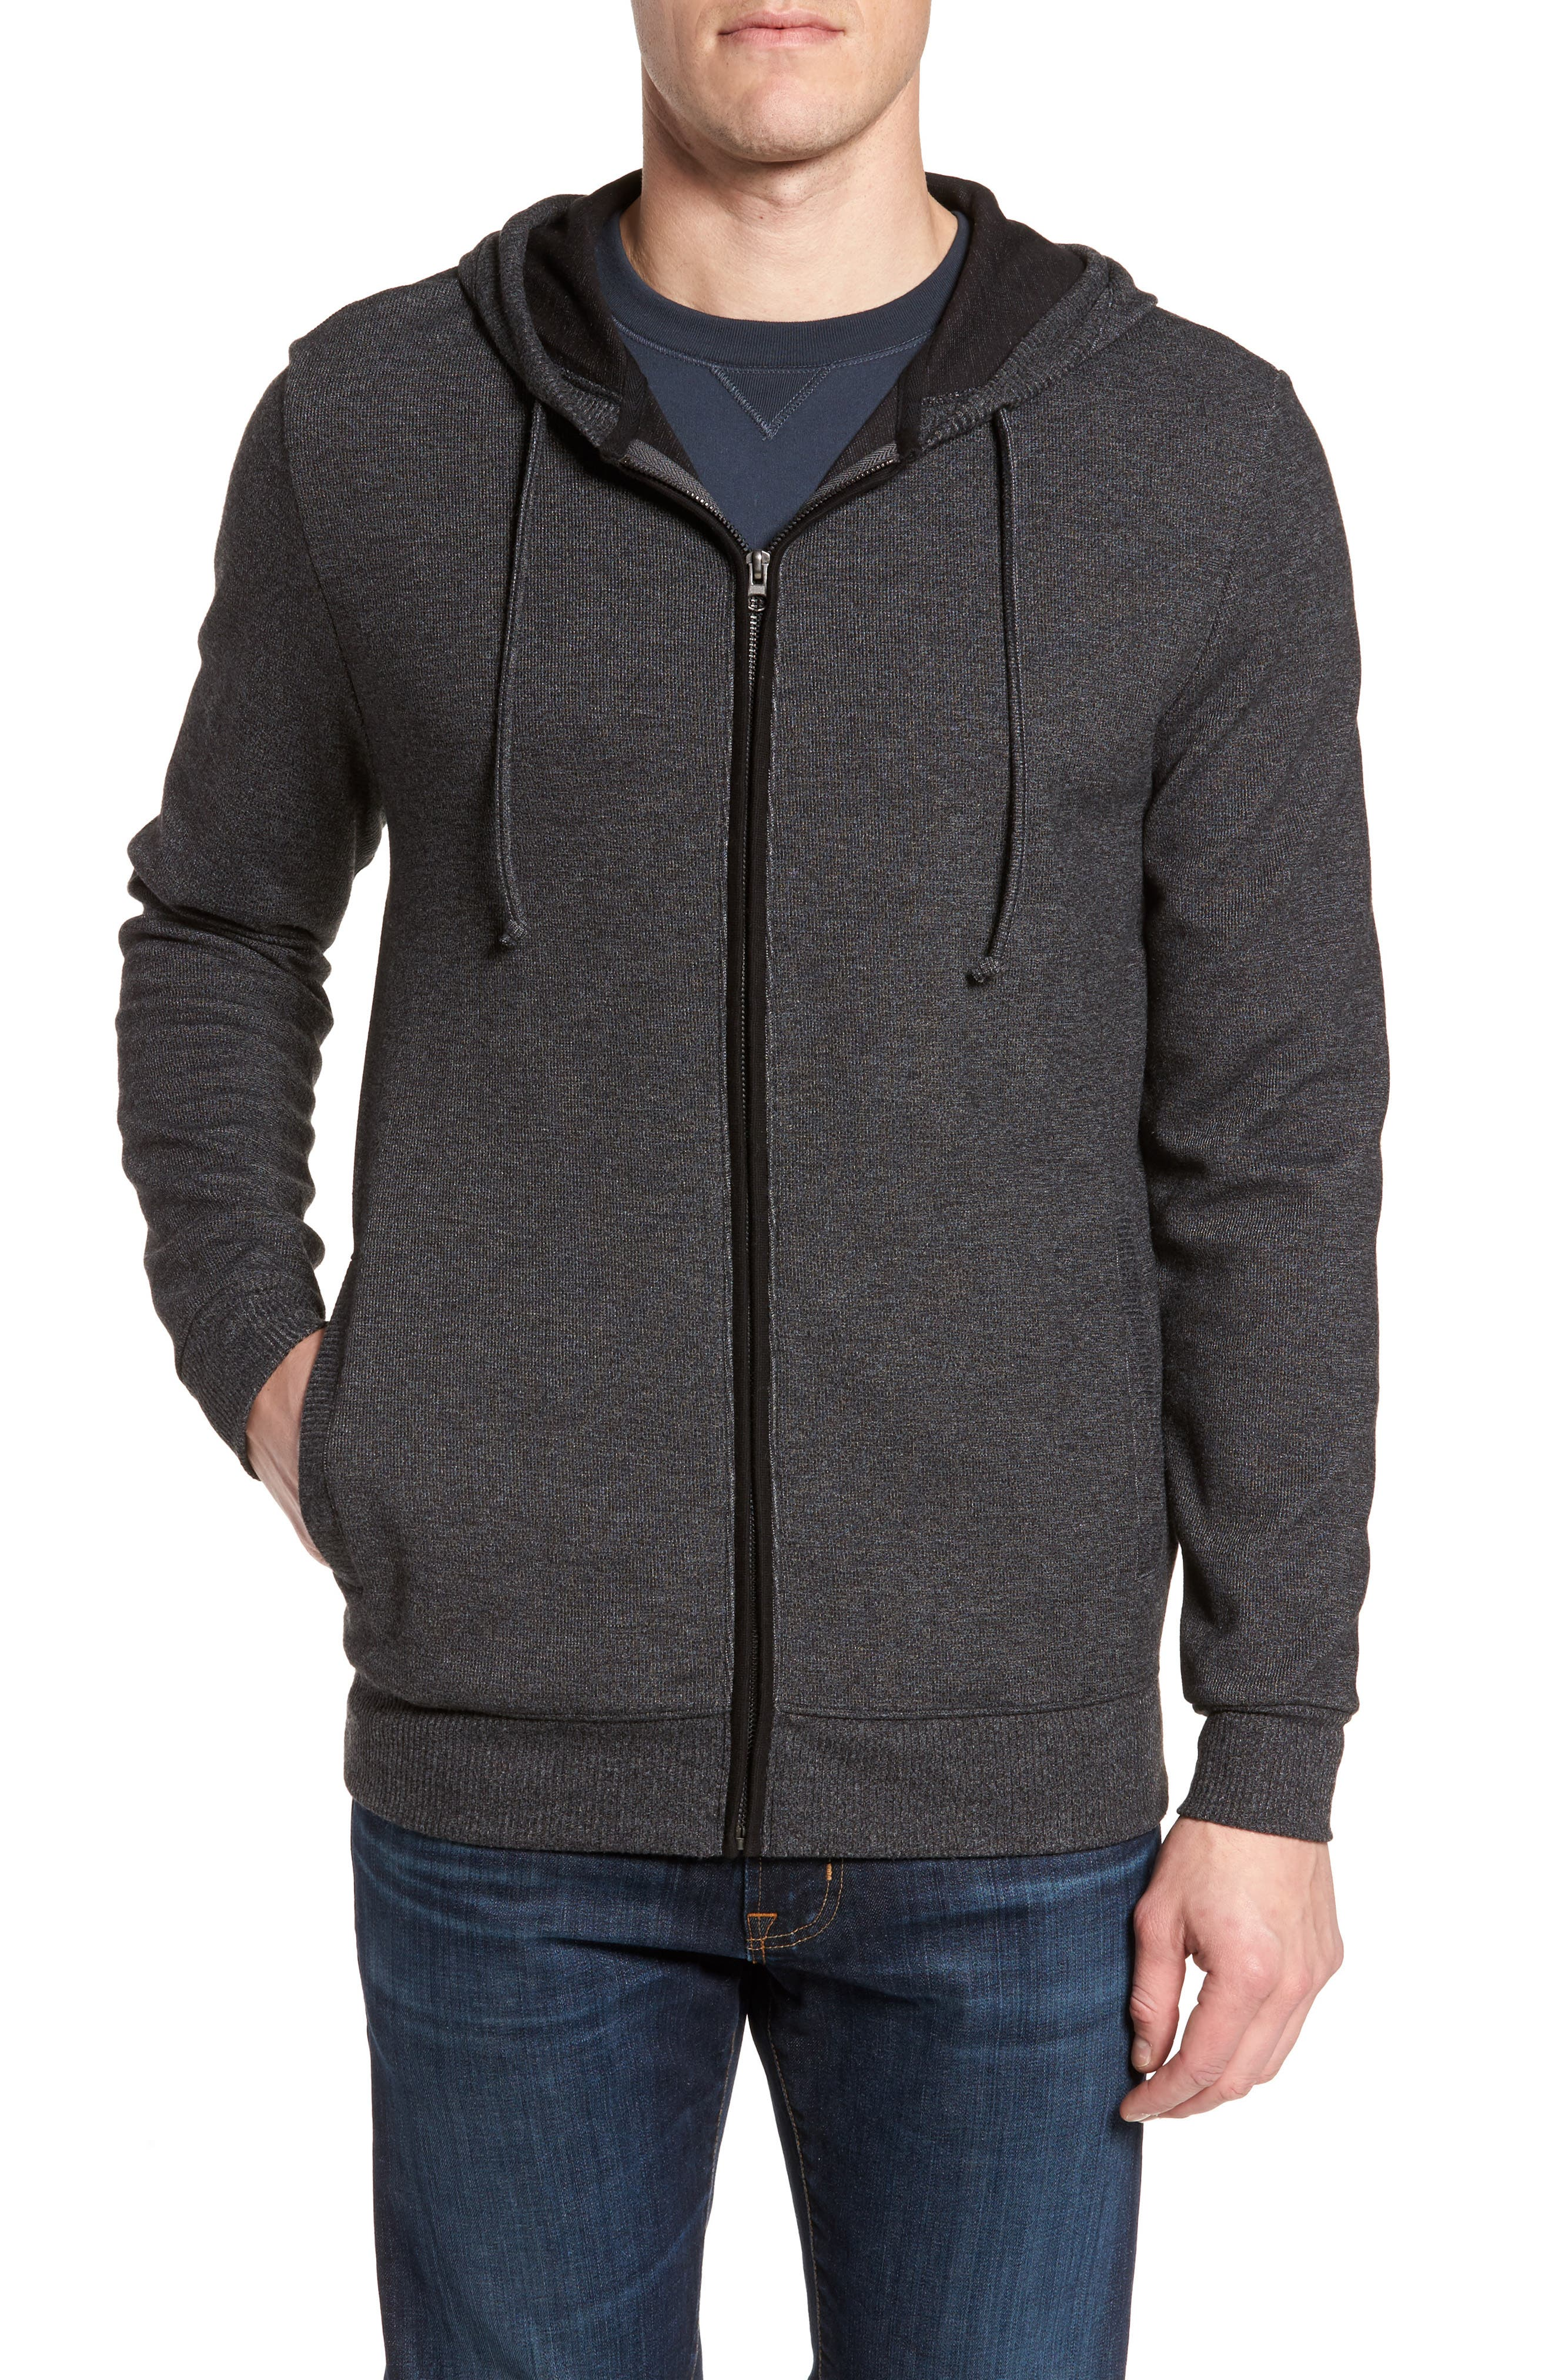 Snare Zip Front Hooded Cardigan,                         Main,                         color, Black